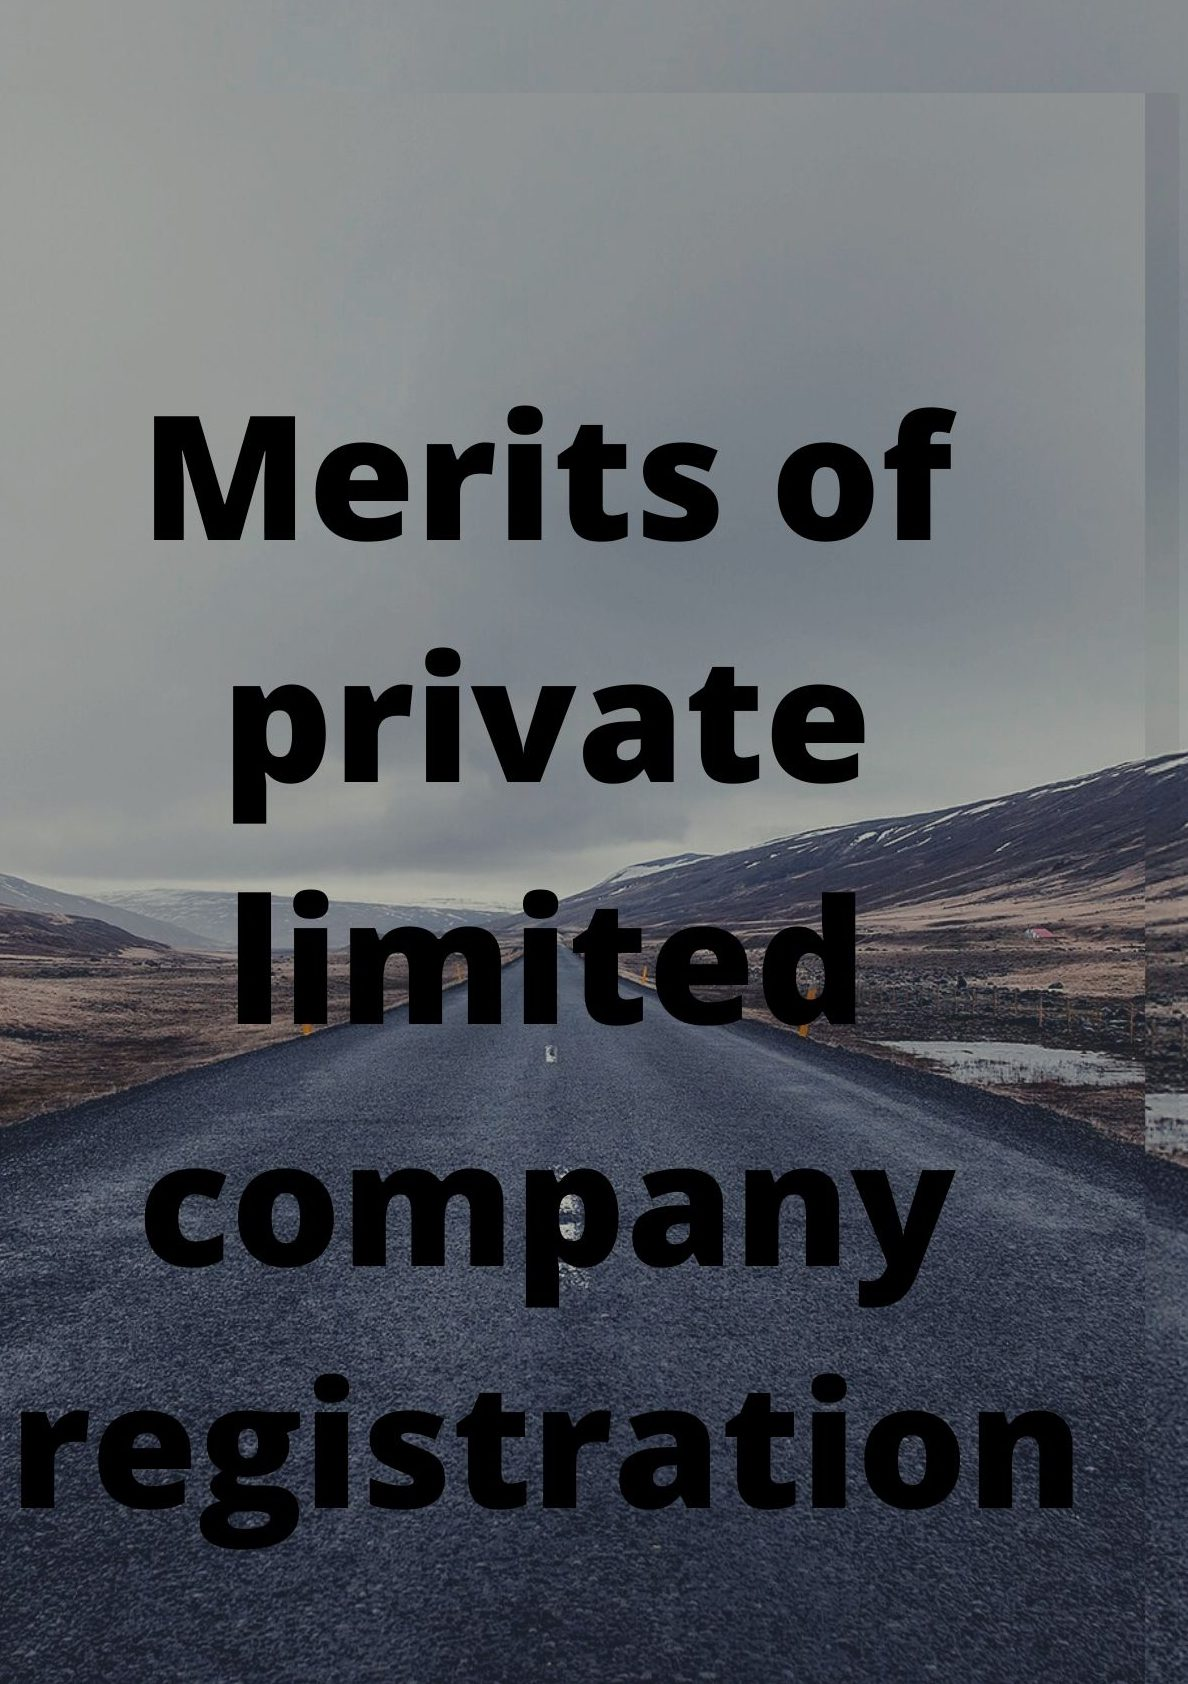 merits of private limited company registration